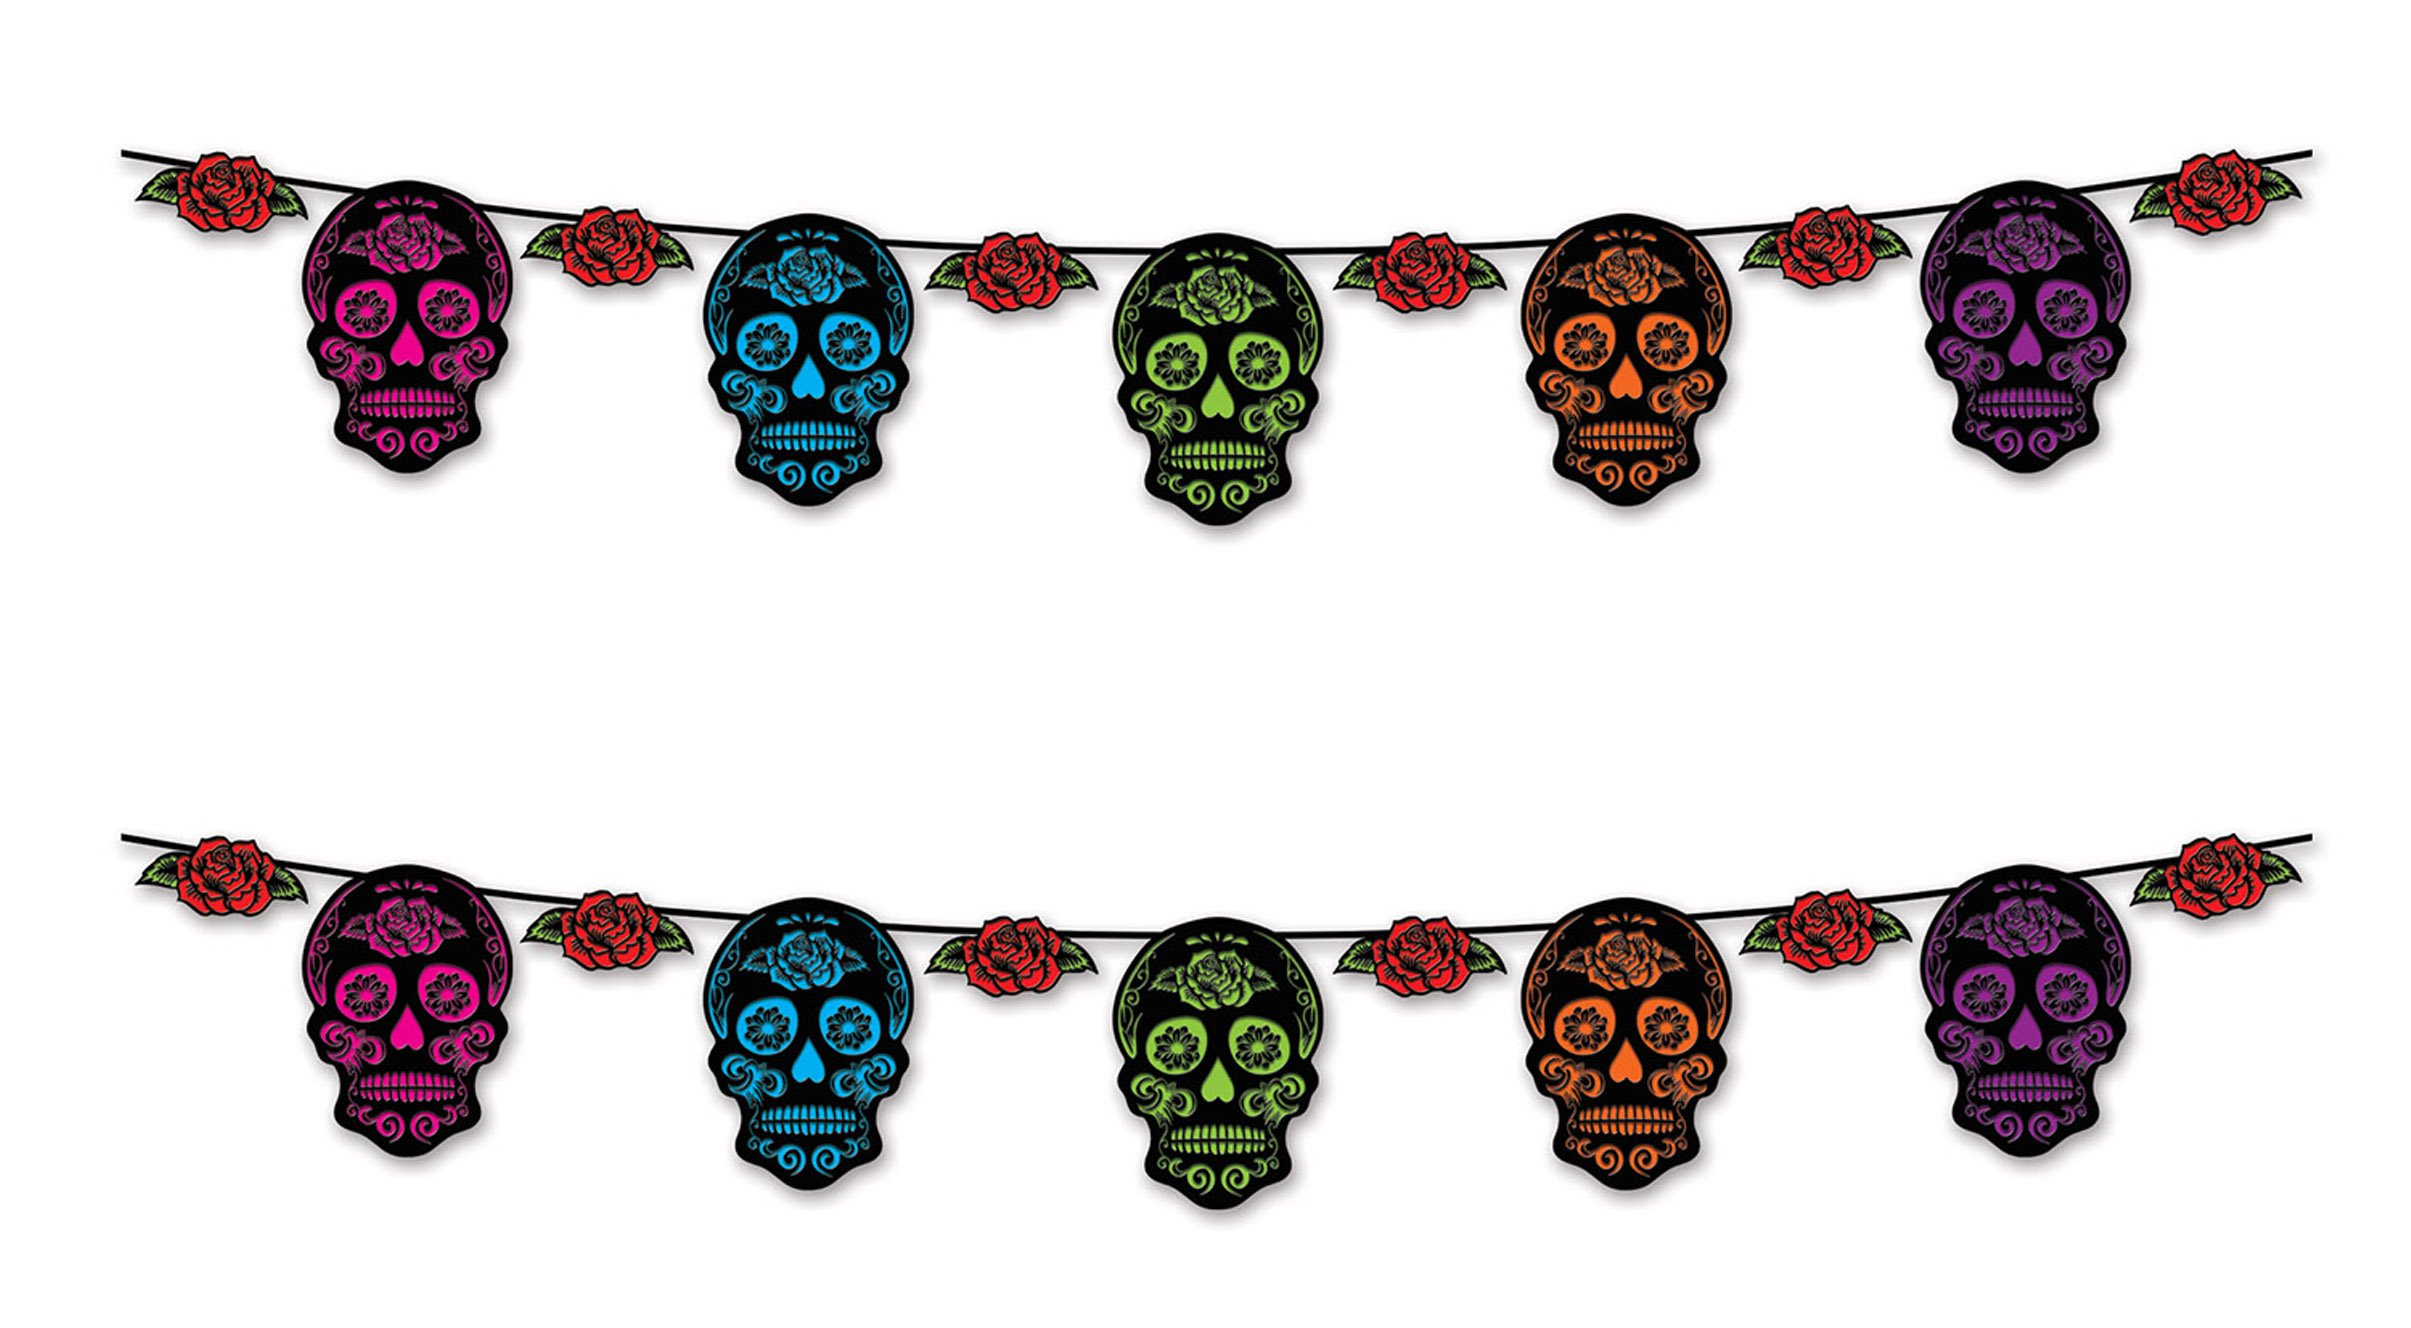 Beistle 00357, 2 Piece Day of the Dead Sugar Skull Streamers, 9'' x 12' by Beistle